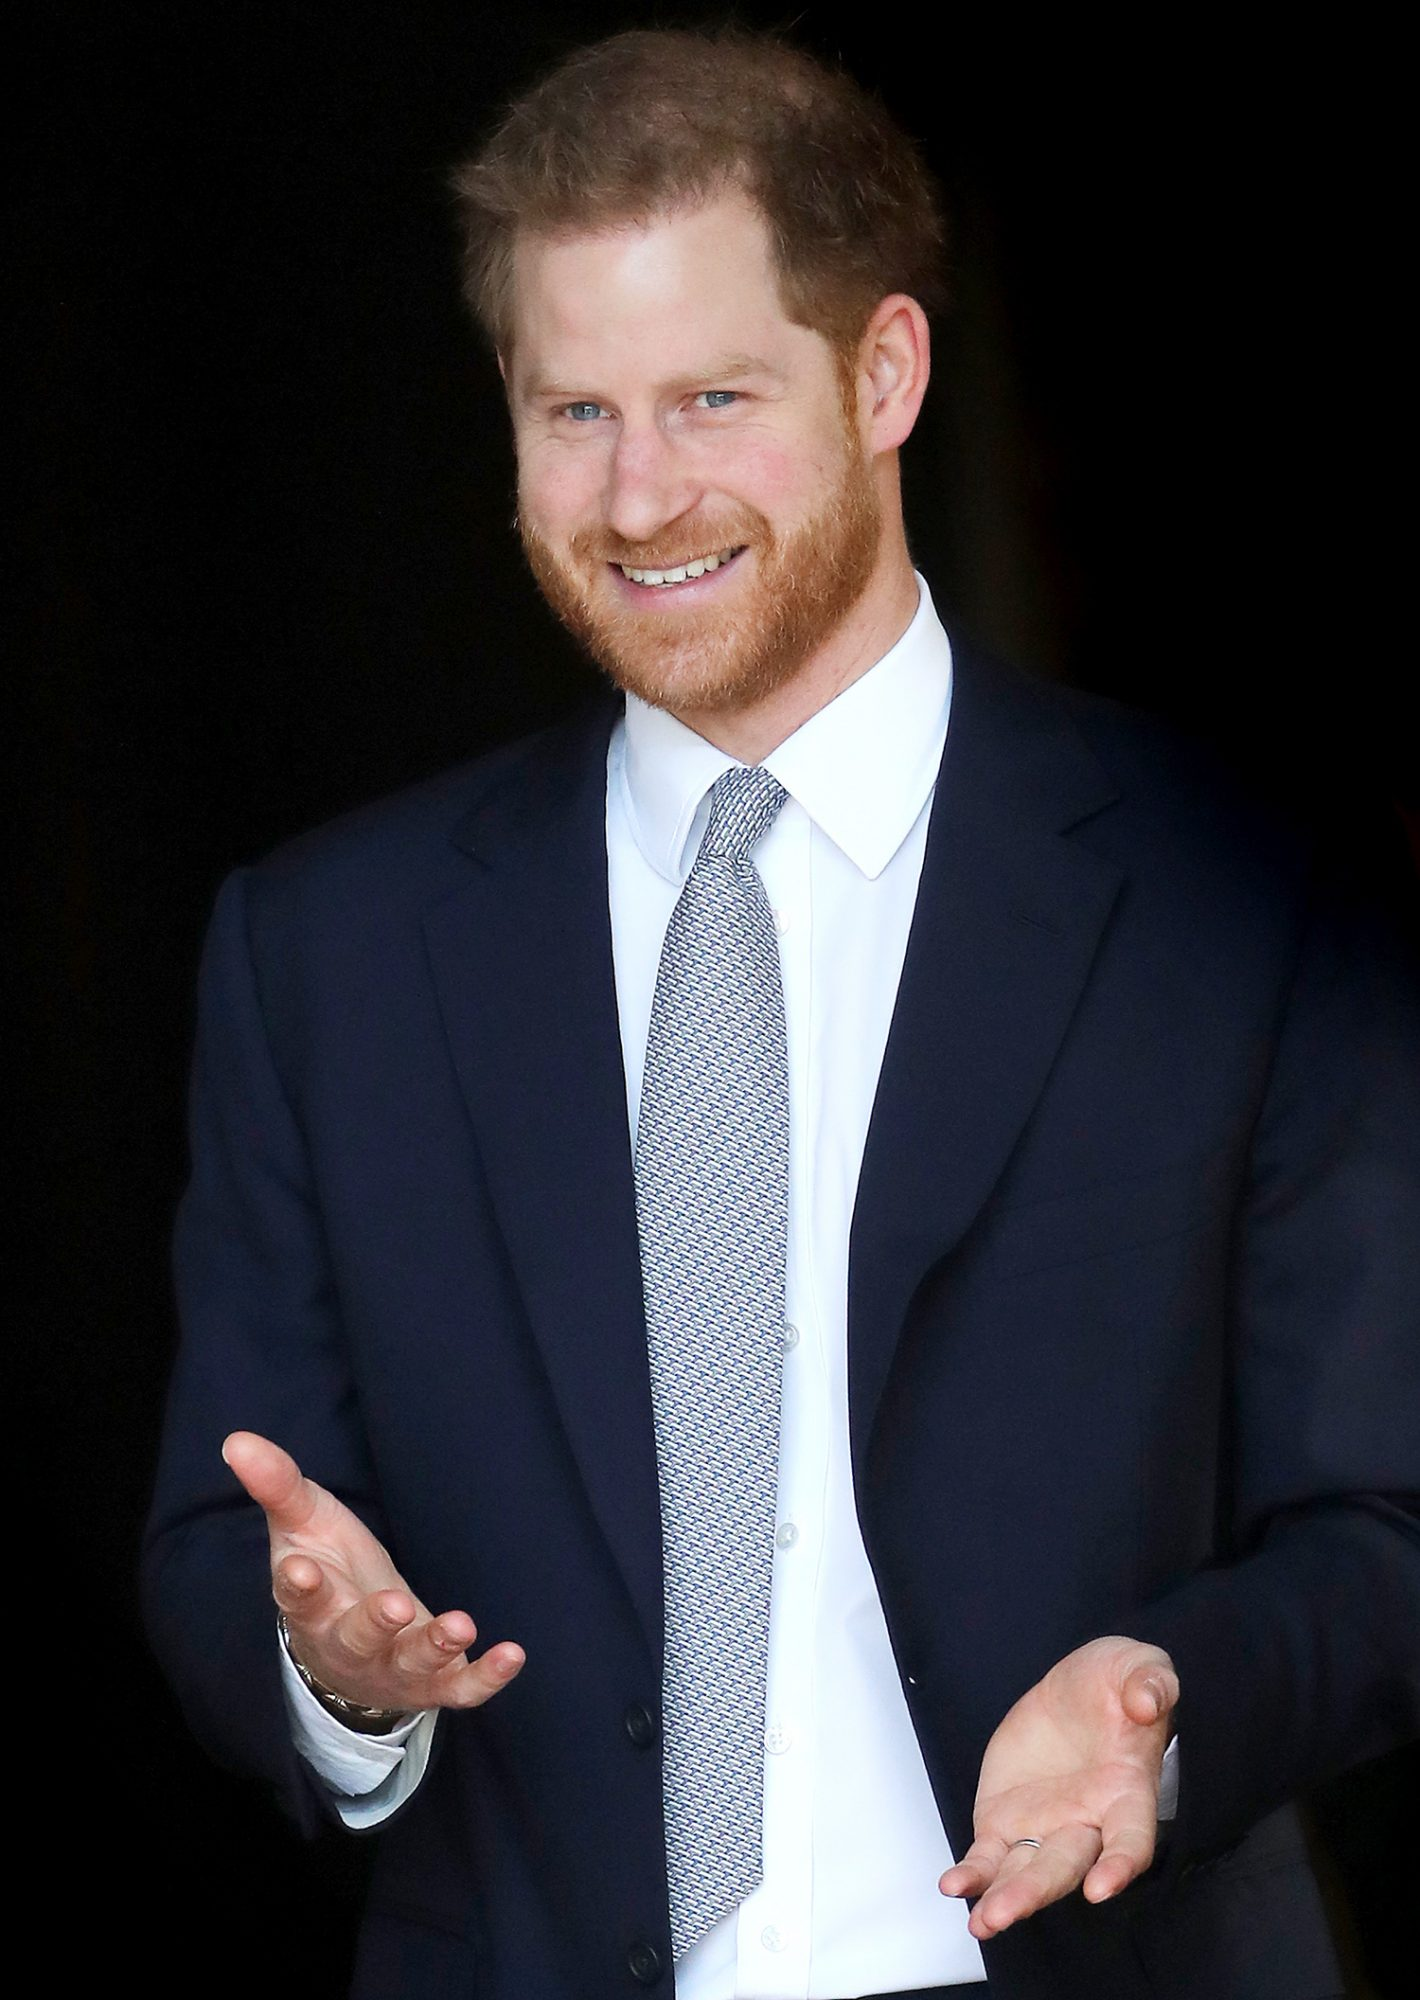 Prince Harry, Duke of Sussex hosts the Rugby League World Cup 2021 draws for the men's, women's and wheelchair tournaments at Buckingham Palace on January 16, 2020 in London, England